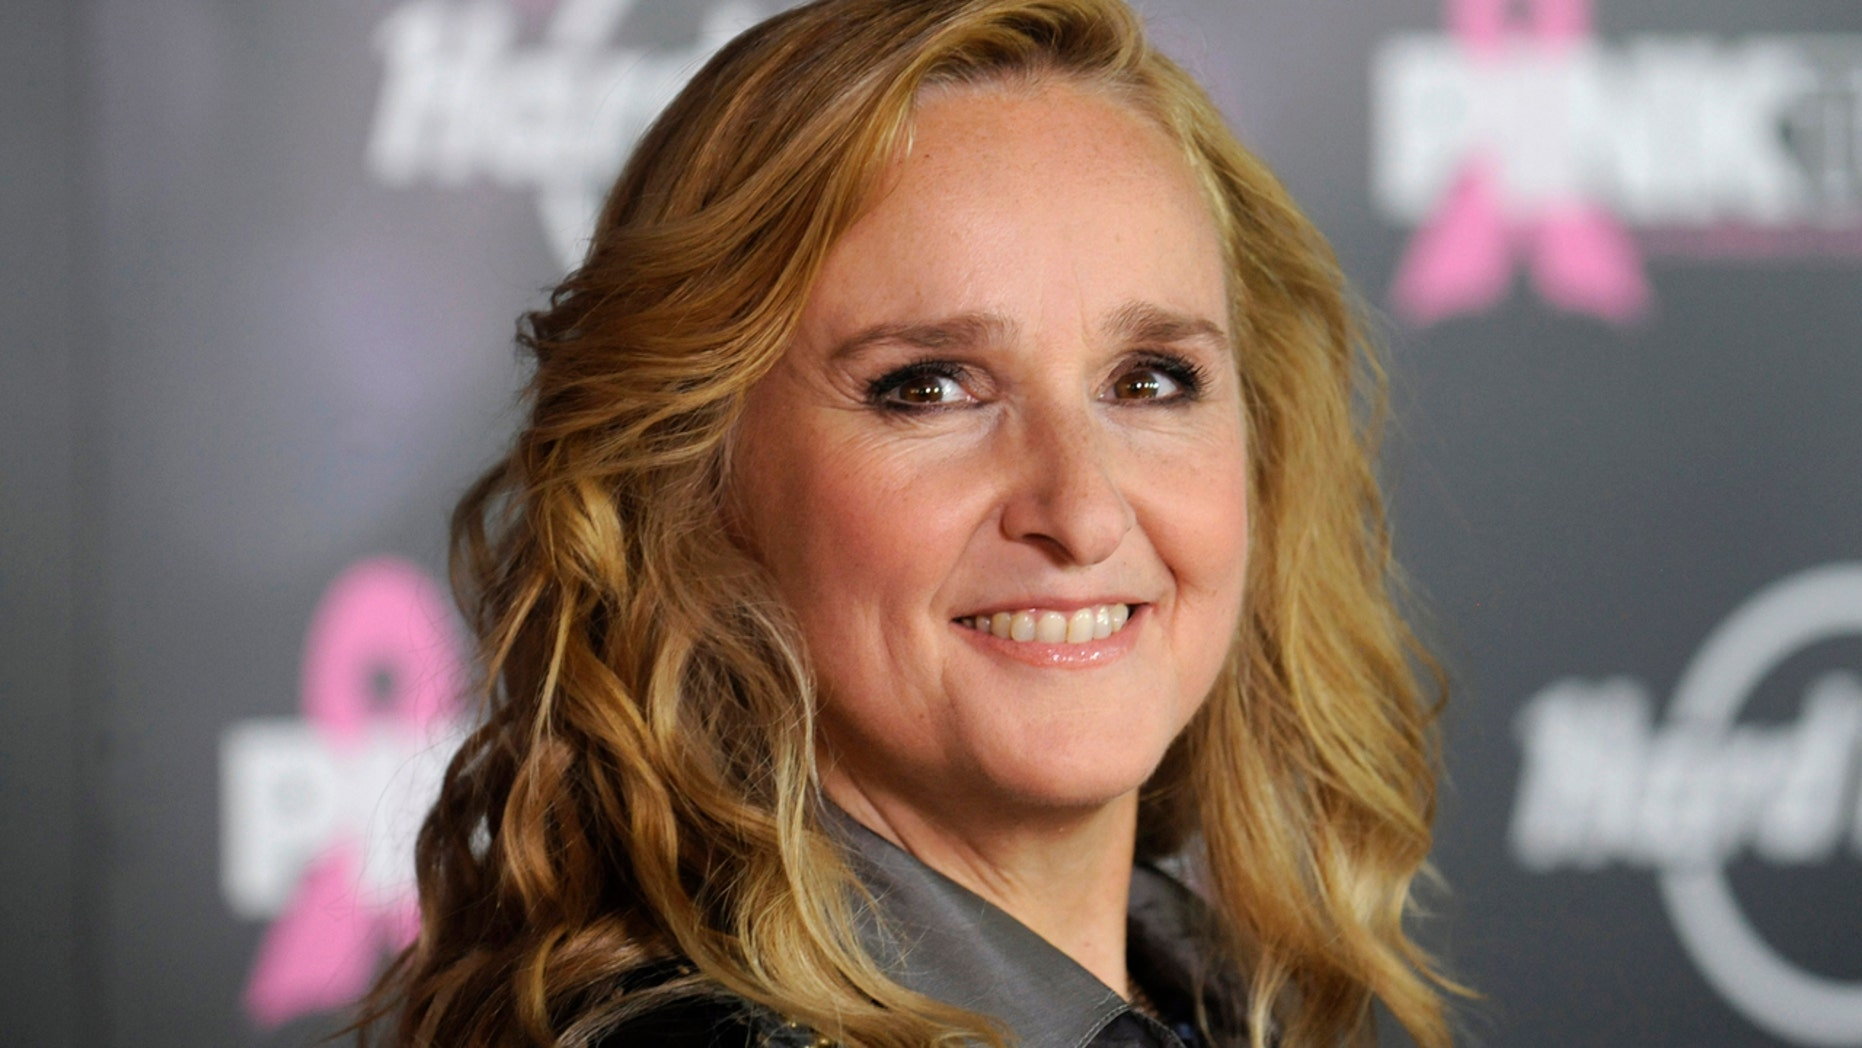 Melissa Etheridge poses for photographers after receiving a star on the Hollywood Walk of Fame in Los Angeles September 27, 2011.